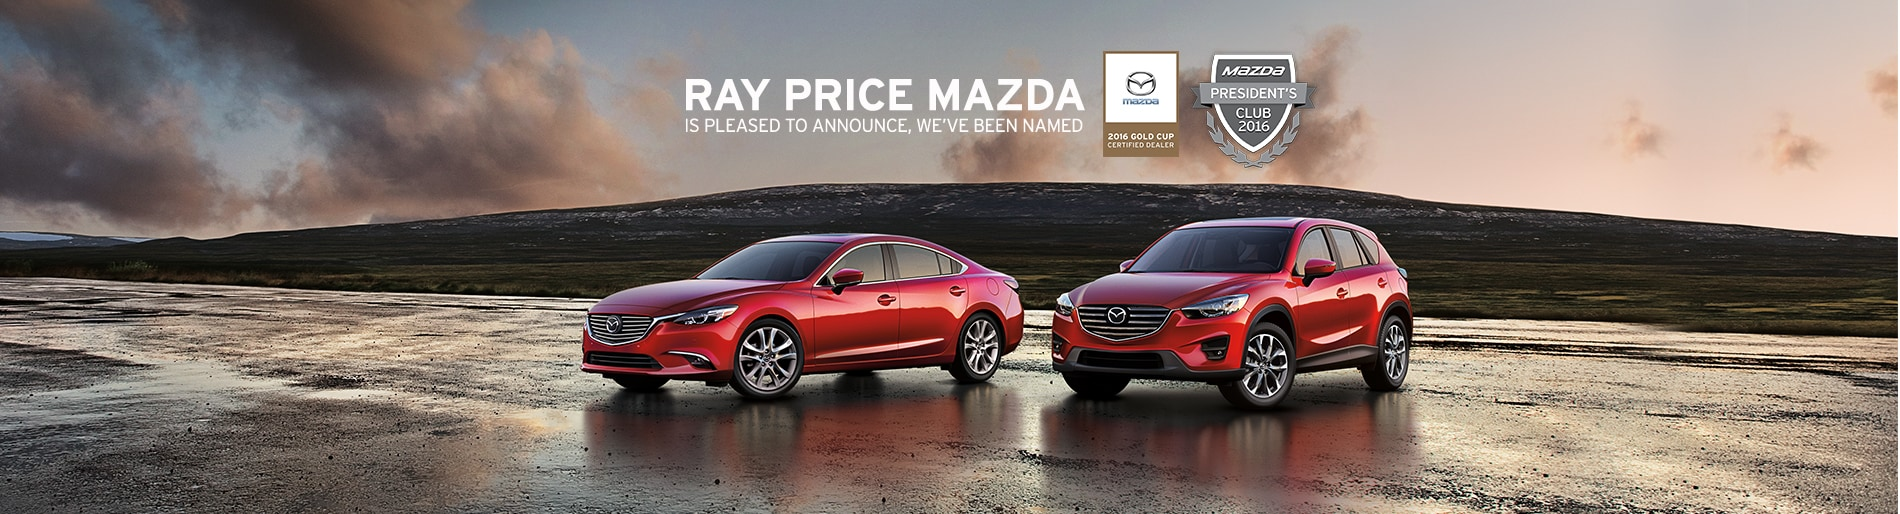 cc gaithersburg dealers md in financing cx mazda